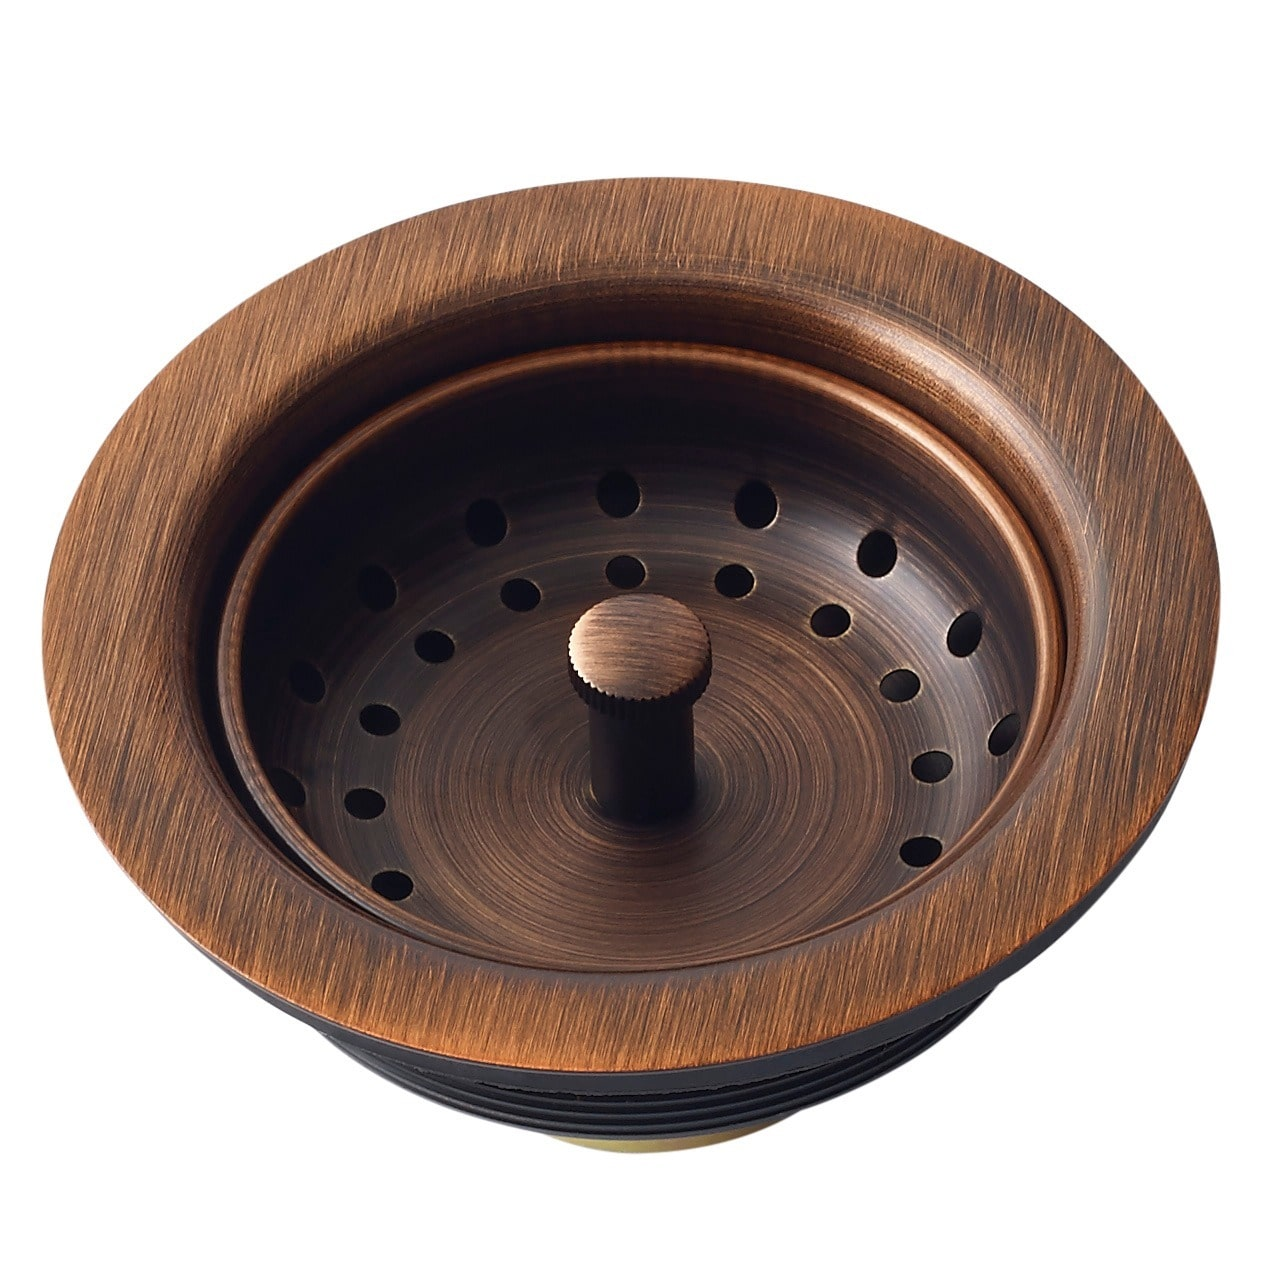 Sinkology 3.5-inch Antique Copper Finished Solid Brass Kitchen Sink Strainer